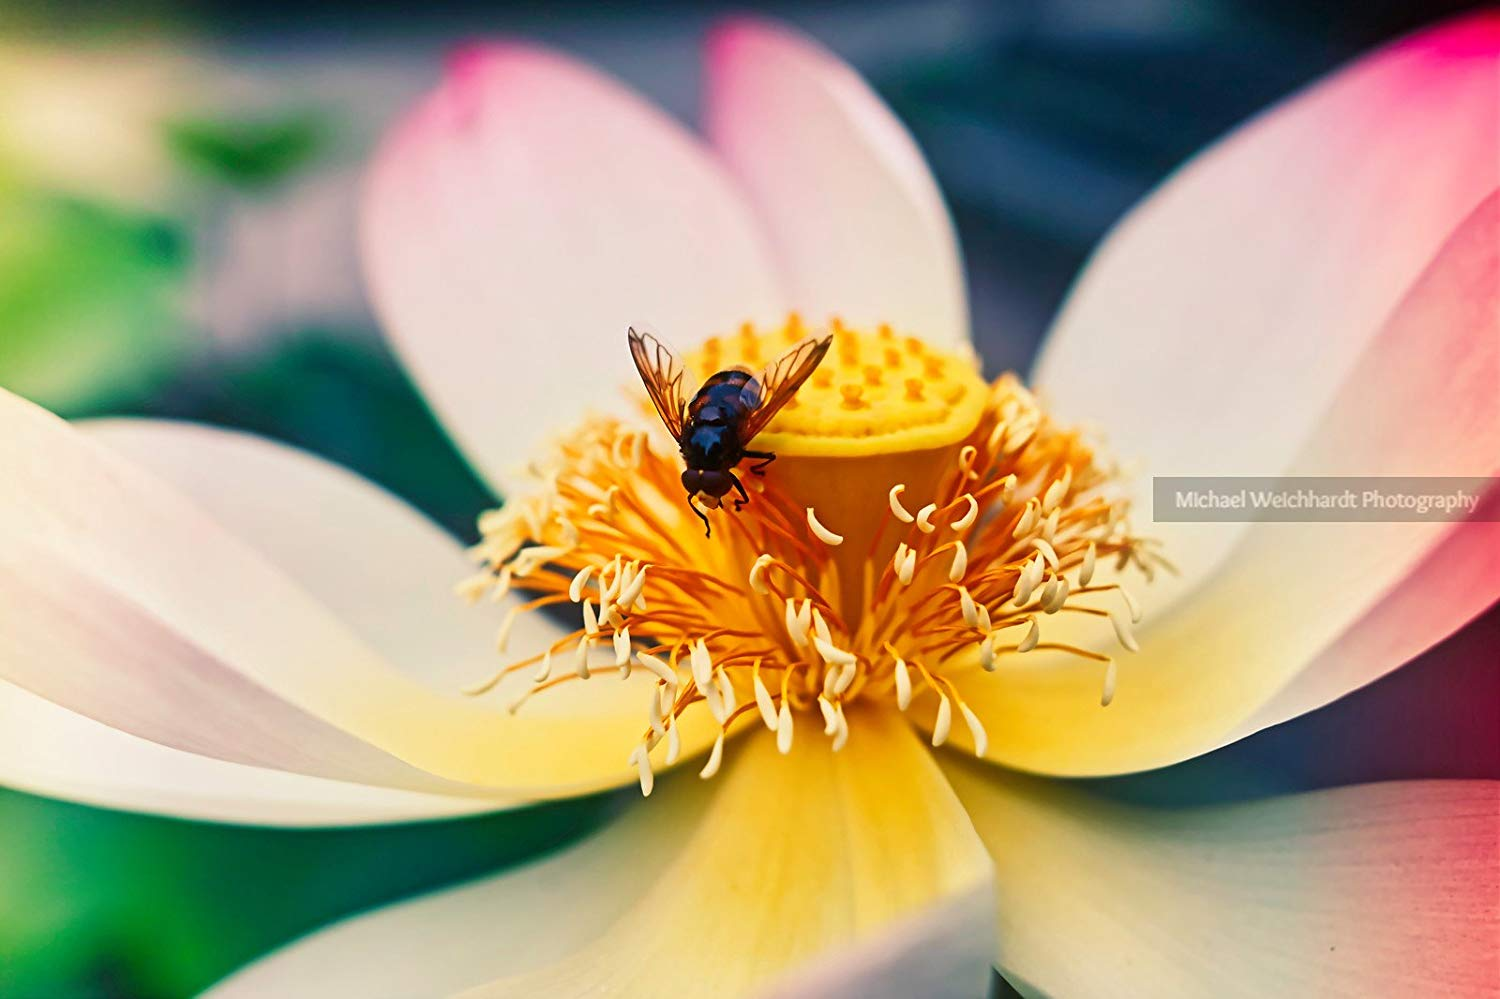 Lotus Flower with Fly Wallpaper Photo Print, Warm, Professional Photography Print, Nature Wallpaper, Paper & Canvas Prints, Nature Flower Photography